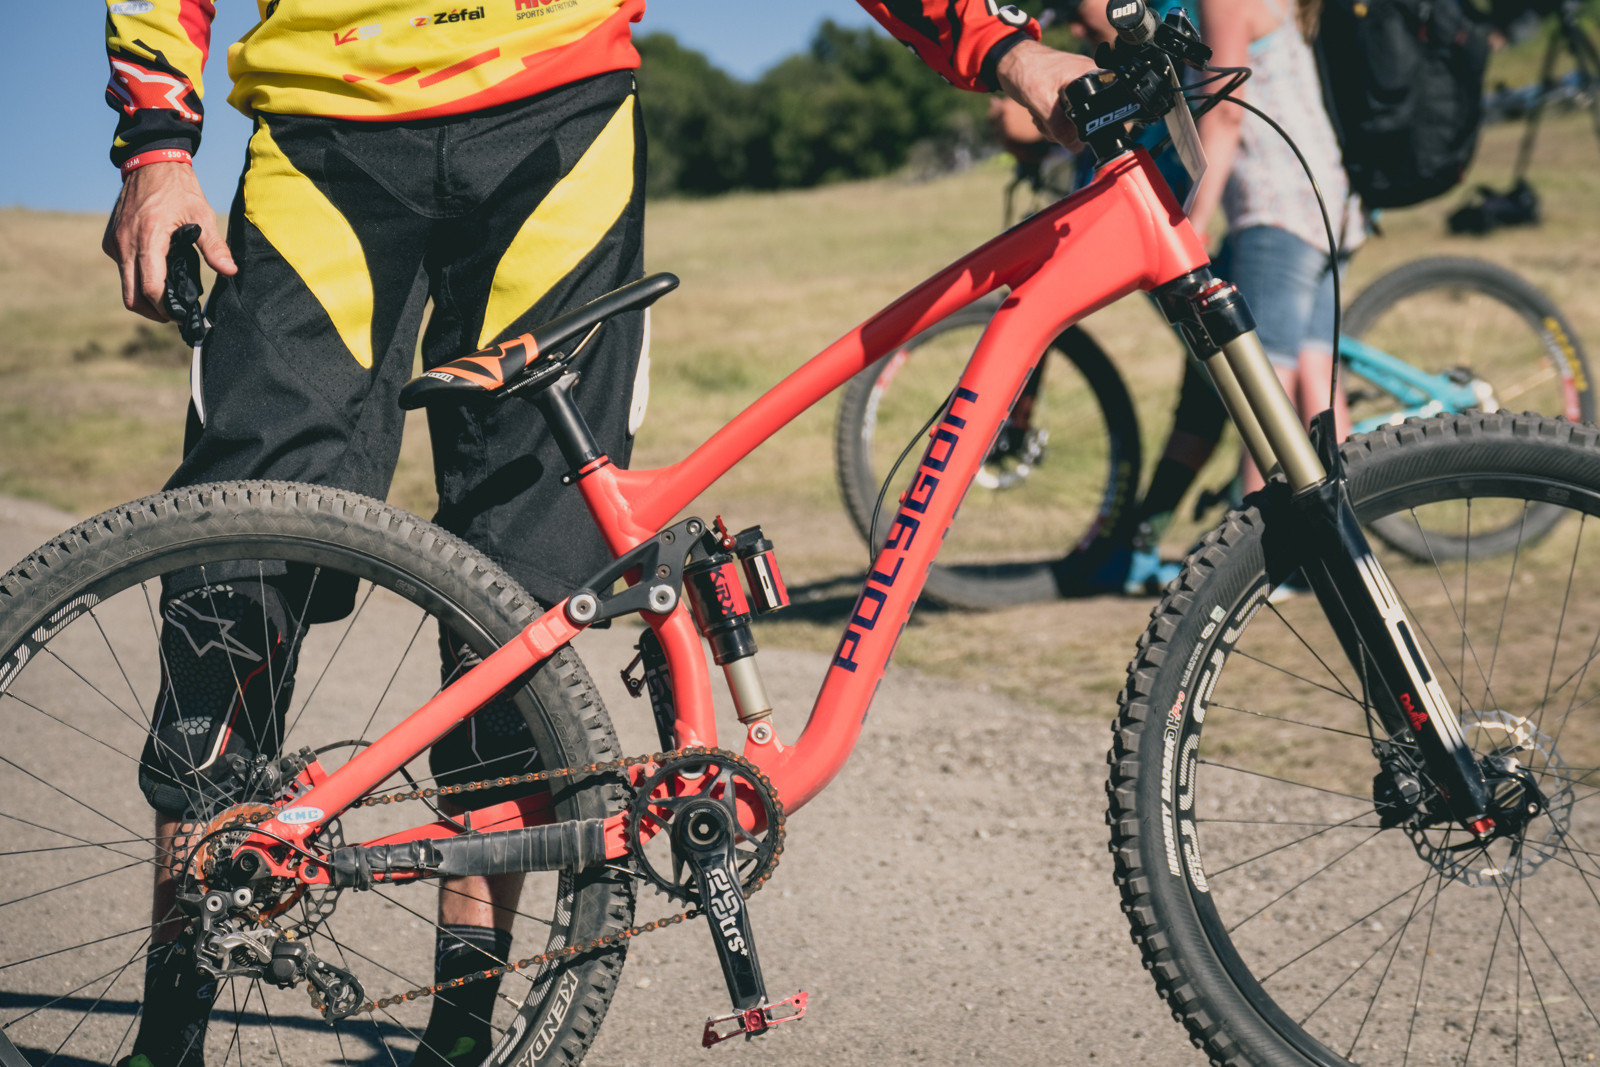 Andrew Neethling's Prototype Polygon Dirt SS Bike - 2016 Sea Otter Classic Pit Bits - Mountain Biking Pictures - Vital MTB